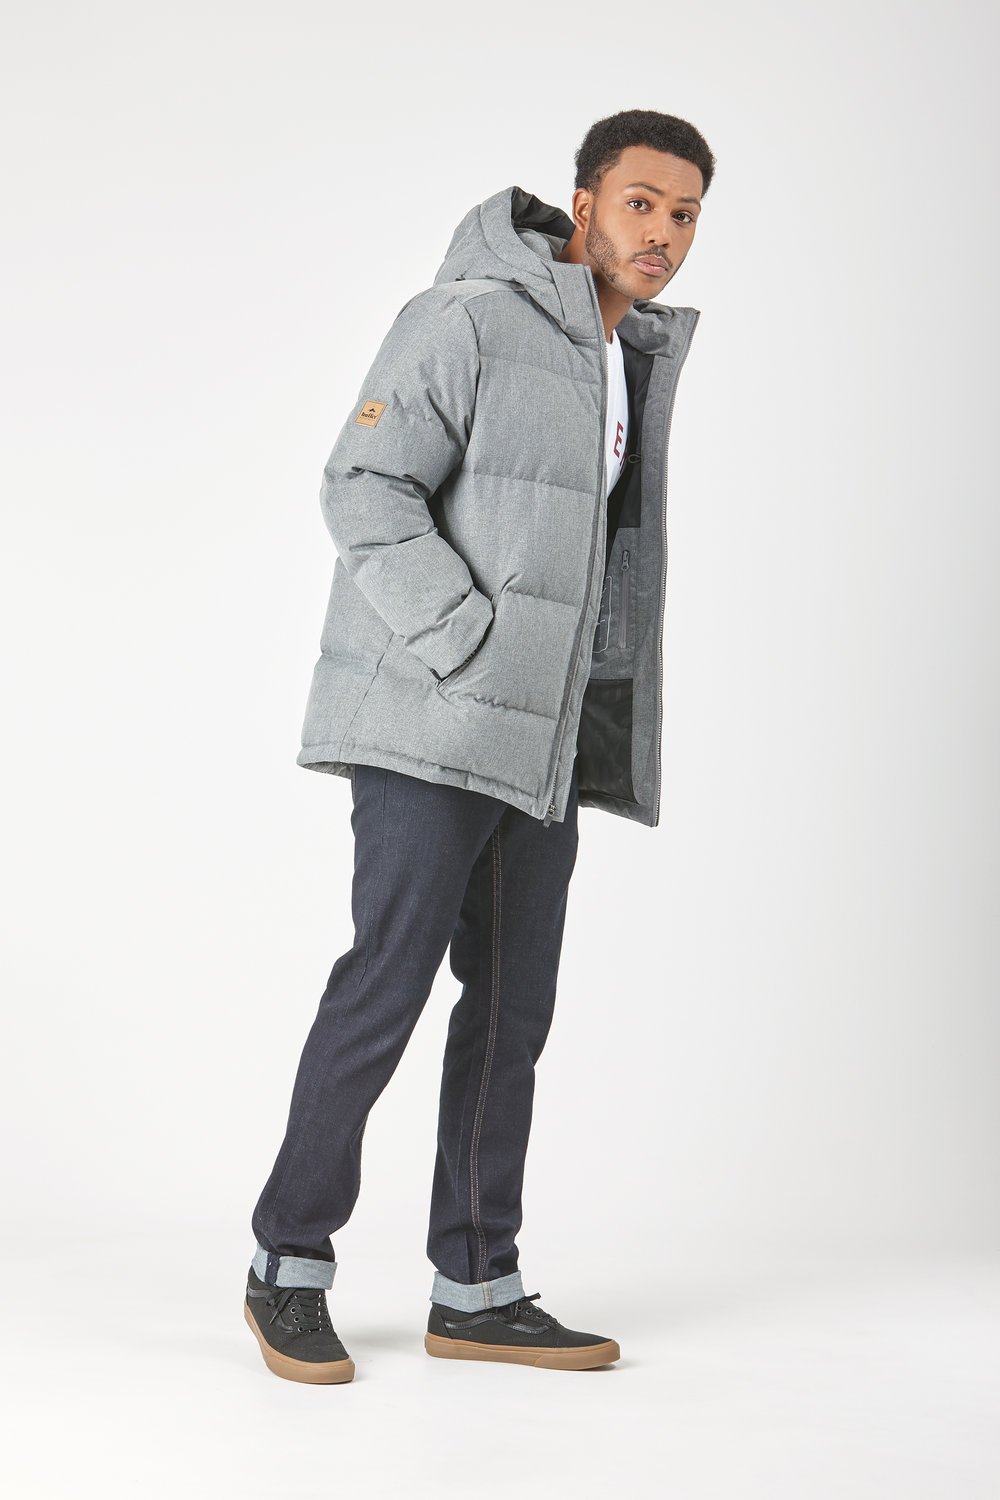 Huffer_OW-17_M-Classic-Down-Jacket_Grey-04.jpg